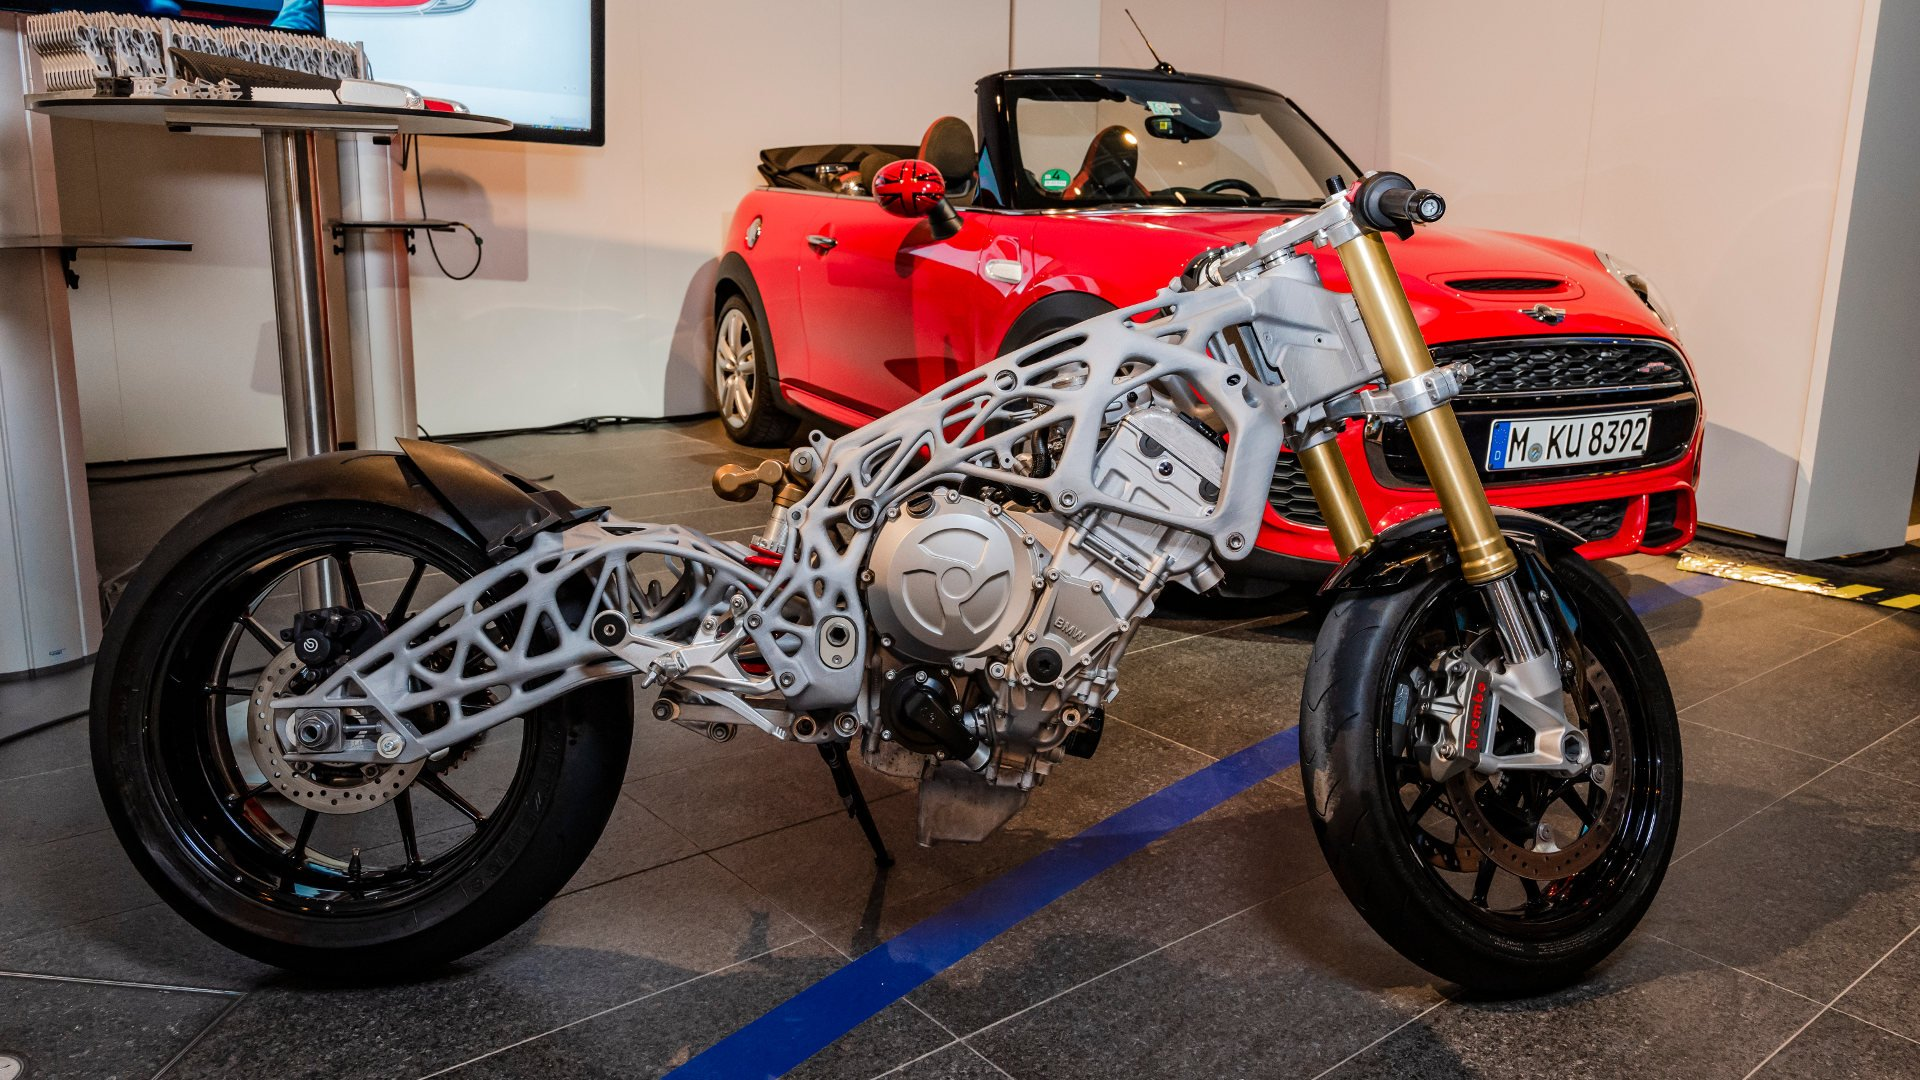 Futuristic Metal 3D Printed Motorcycle Frame Teased by BMW | All3DP